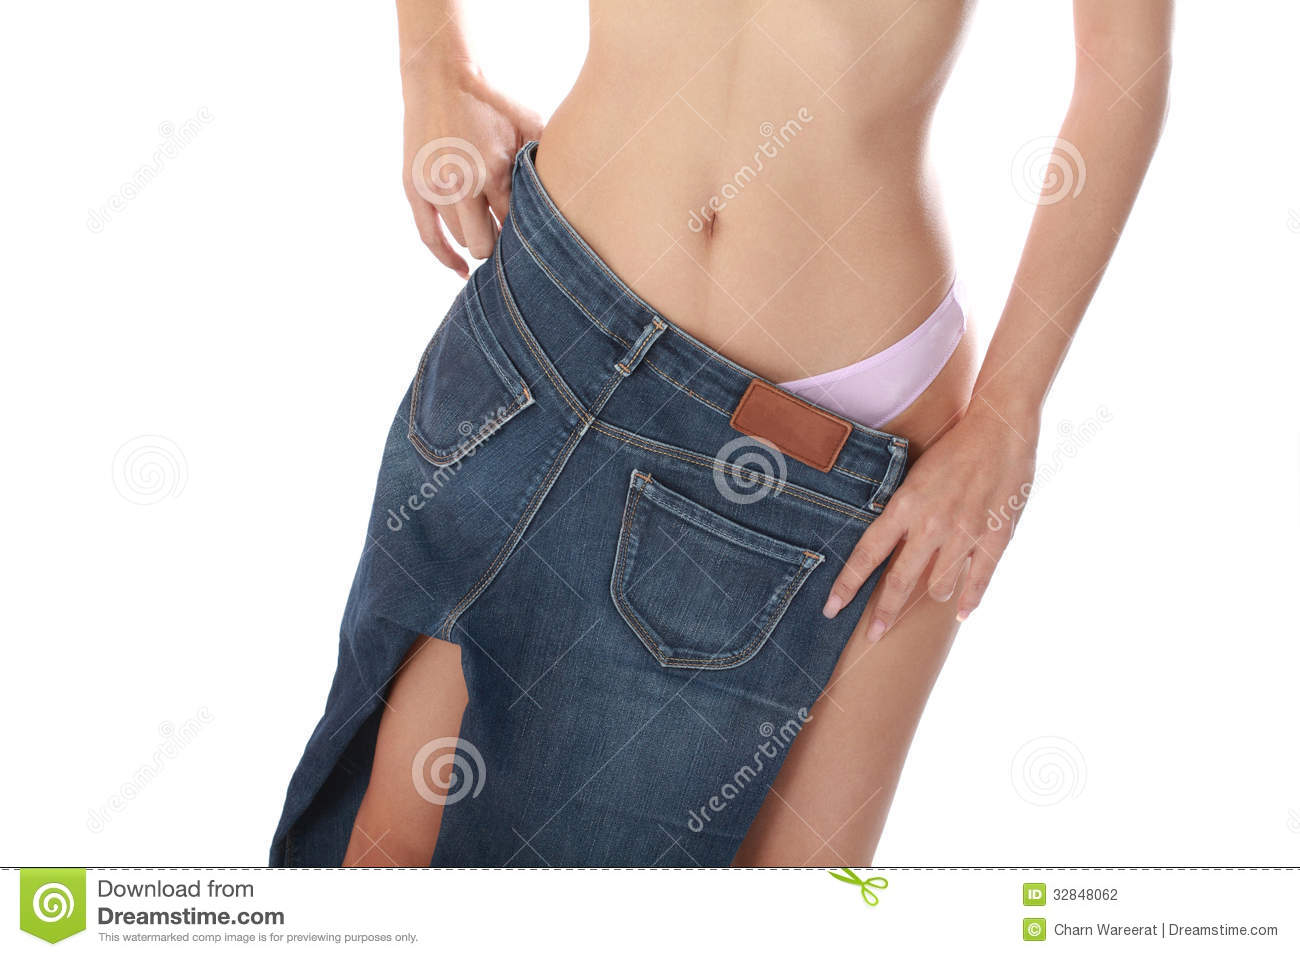 Women take off jeans. stock photo. Image of female, adult ...